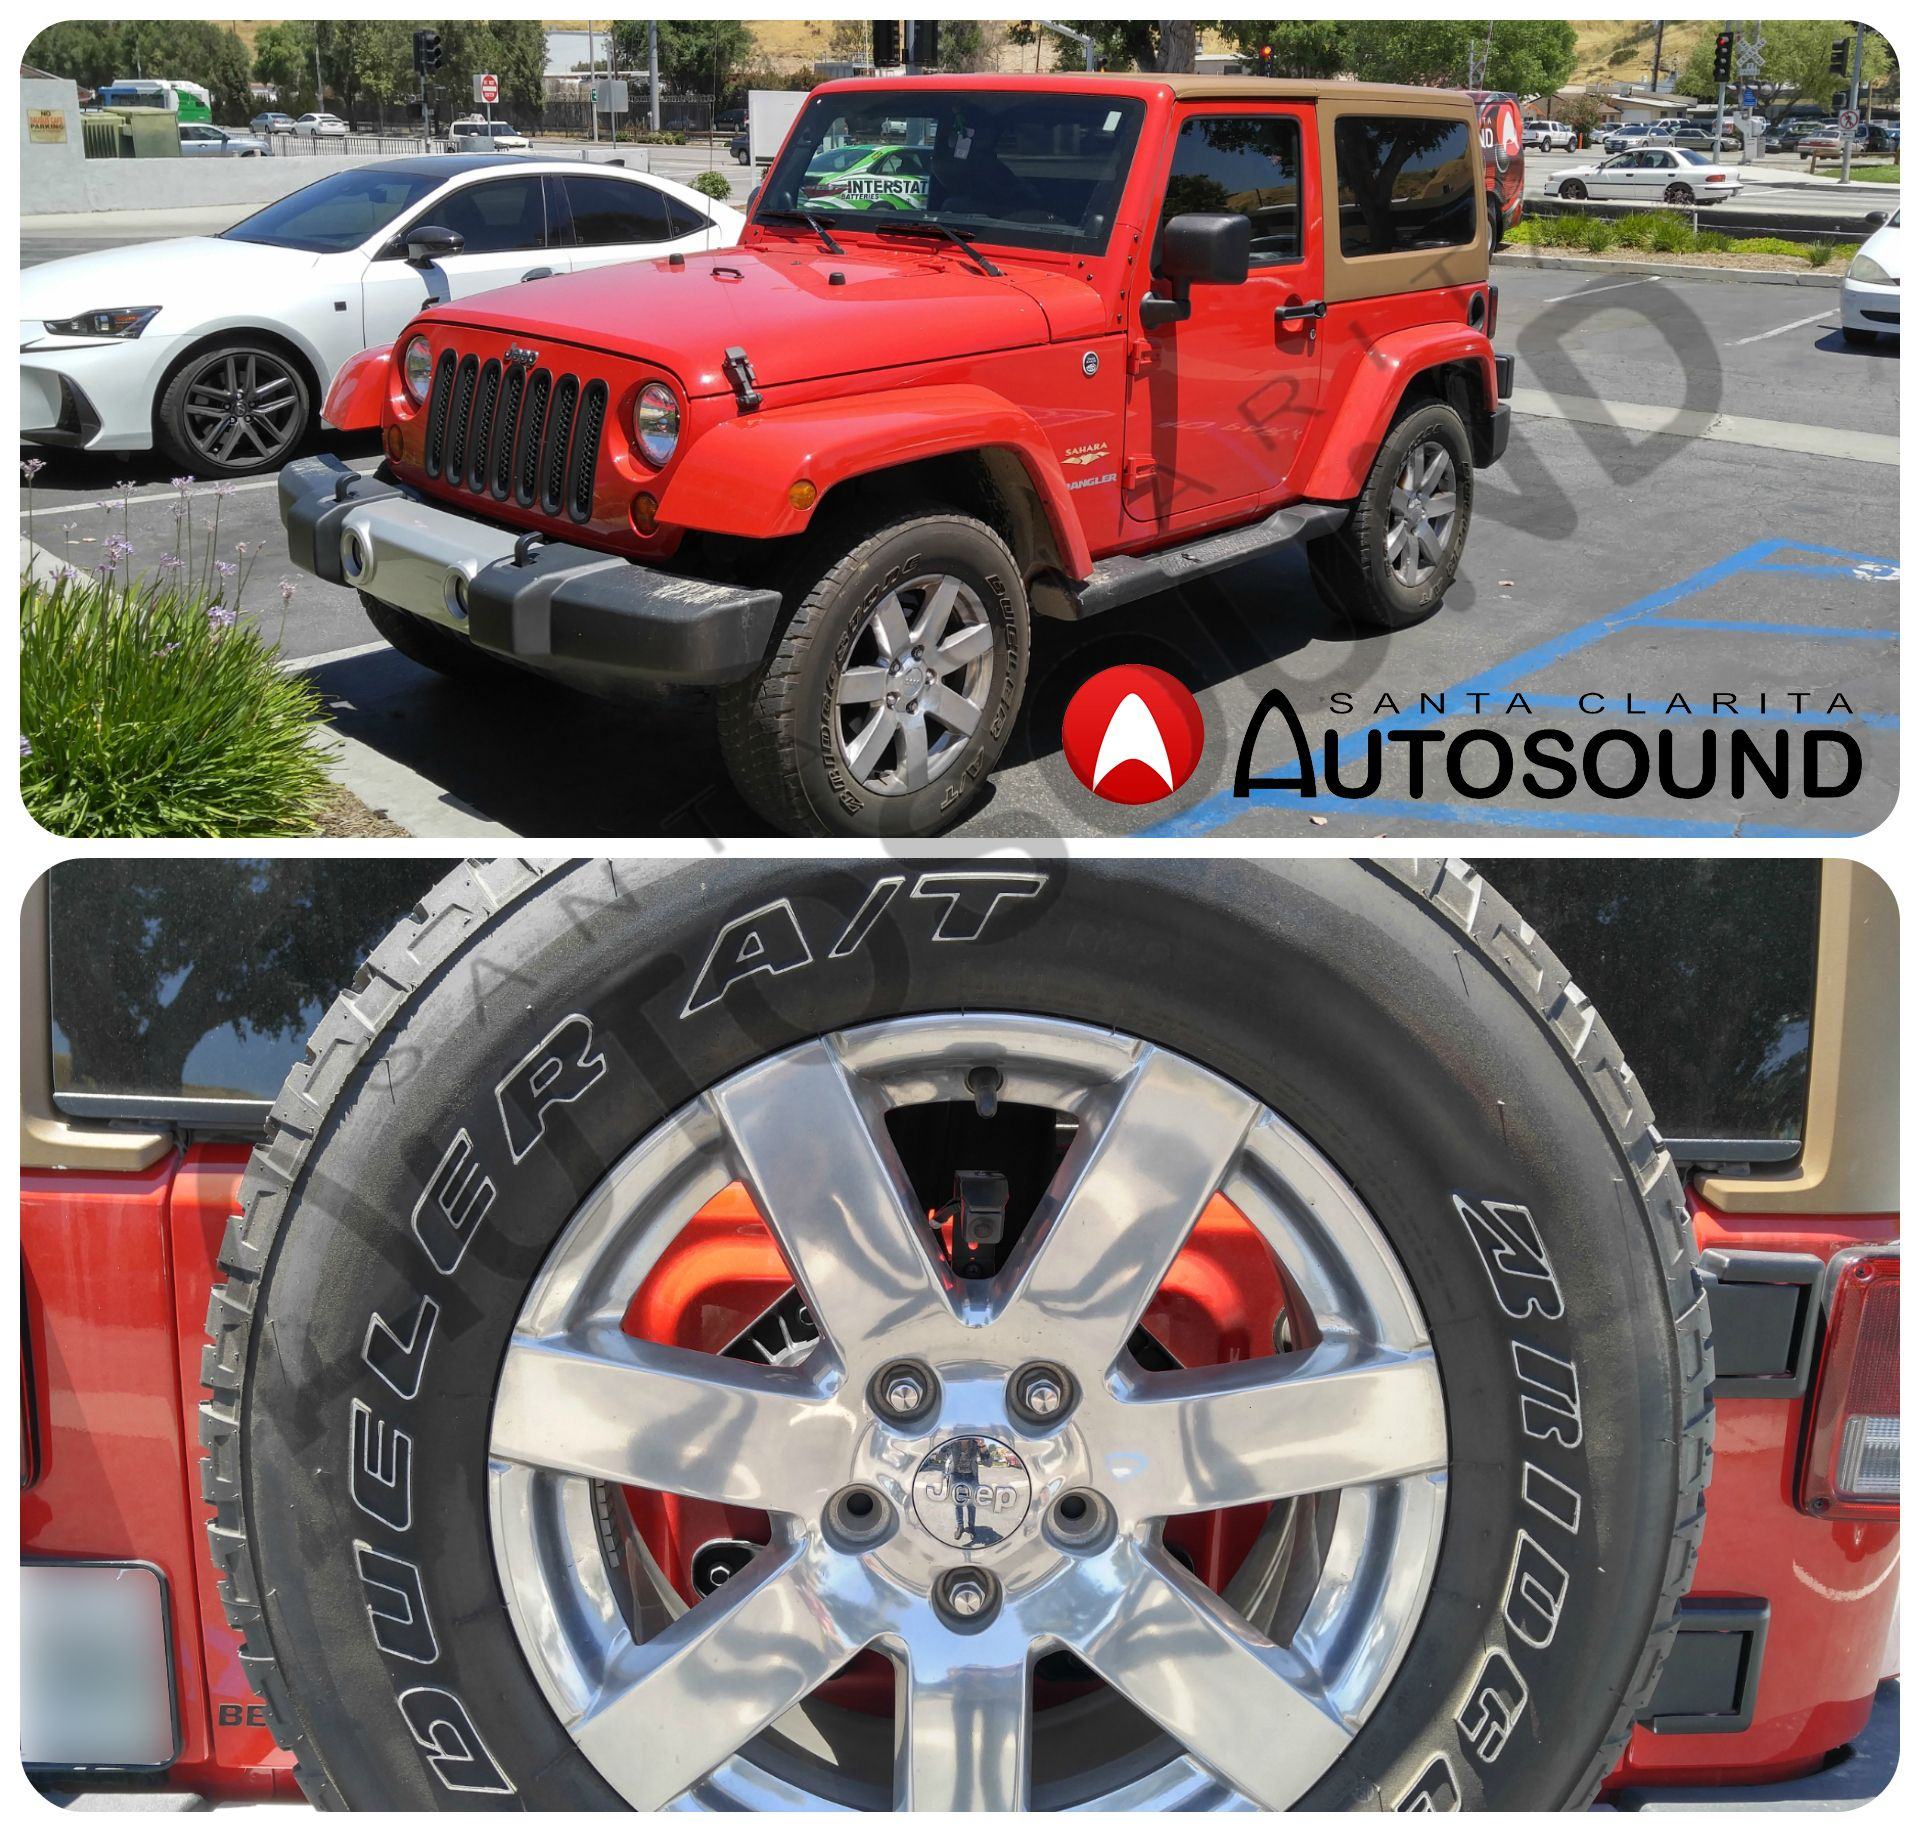 Home Cool Jeeps In Santa Clarita Jeep Wrangler Sahara Backup Camera Wiring Instructions Installation On A We Have Wide Selection Of Cameras With Different Features Contact Us At 661 286 1100